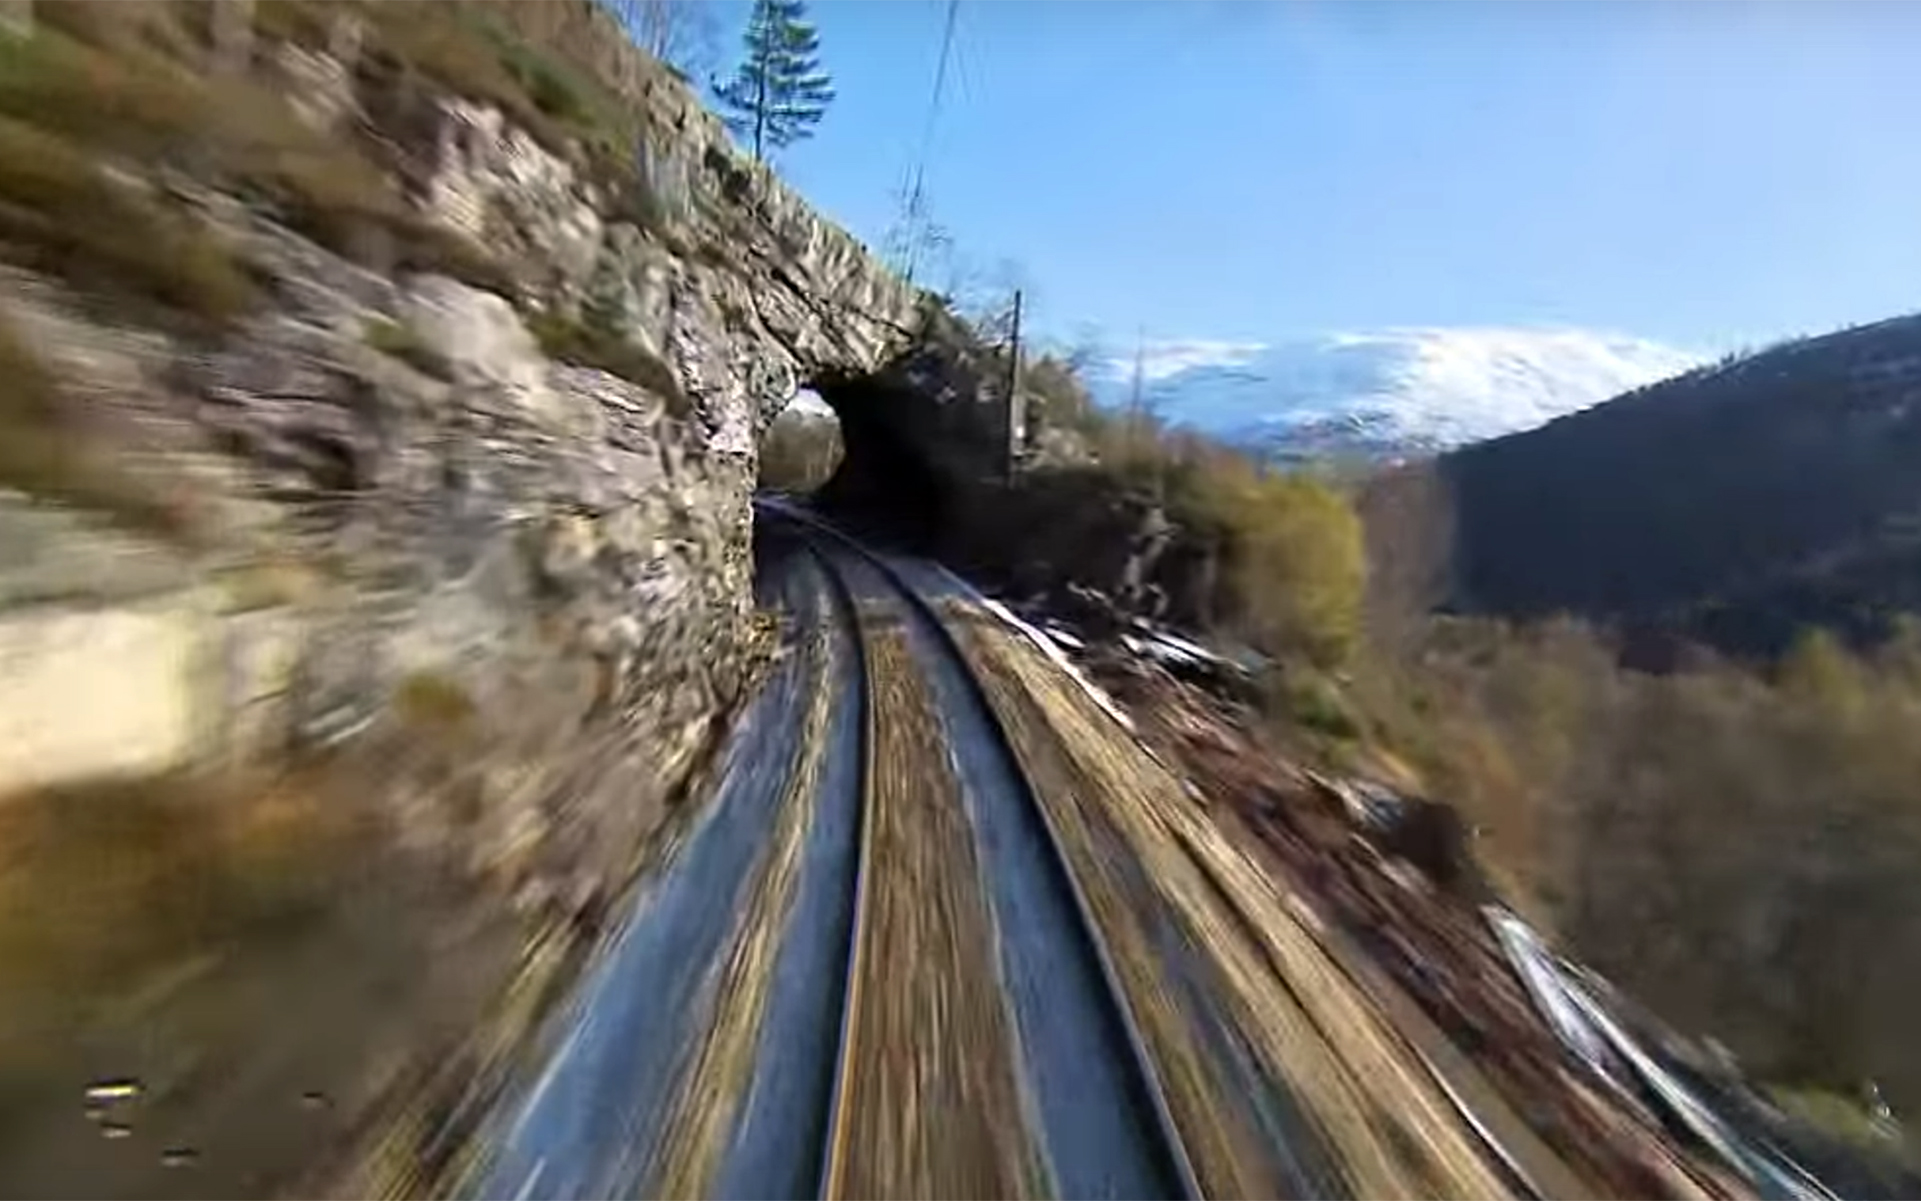 The Ultimate Stoned Staycation: Take a Virtual Cannabis-Fueled Train Ride